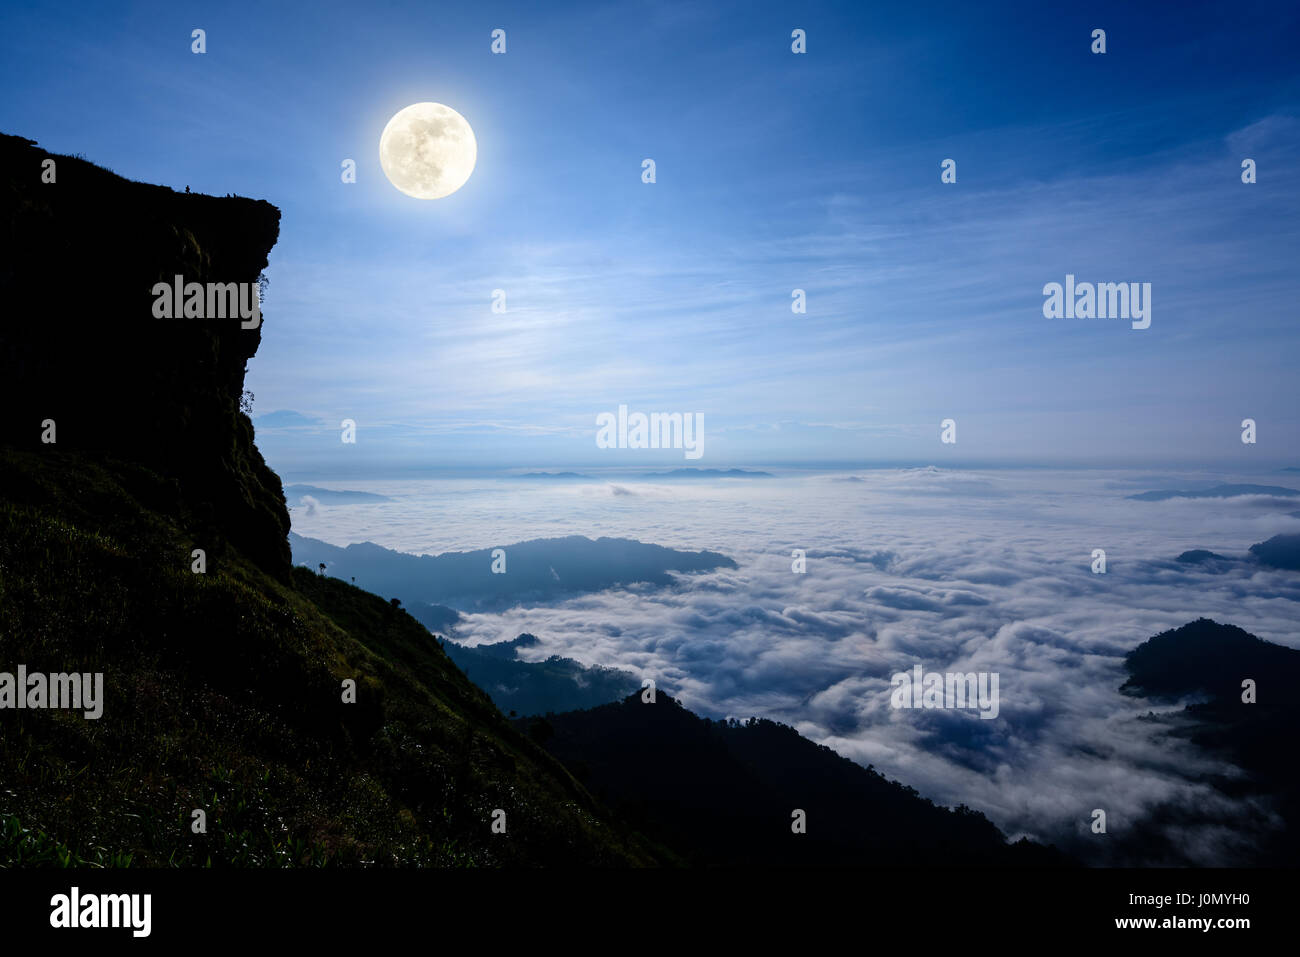 Beautiful Landscape Nature, Full Moon With Bright White Light Over The  Clouds And Fog In The Dark Blue Sky At Night On The Peak Mountain In Winter